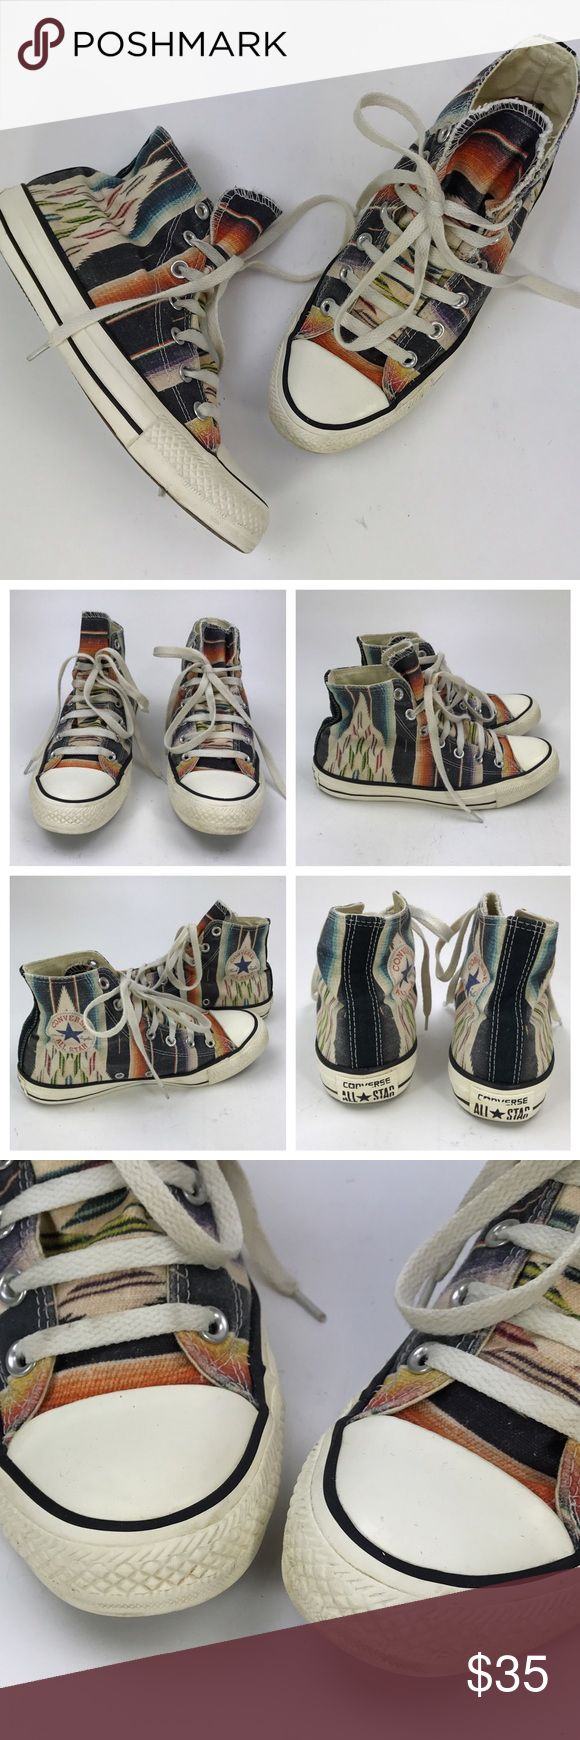 [Converse] Southwest Tribal High Top Chuck Taylors Classic Convere Chuck Taylor All Stars. High top. Lace up. Southwest inspired Ikat pattern. Unisex. Women's size 7. Men's size 5.  Condition: Good pre-owned condition. Some marks/stains on rubber parts. Converse Shoes Sneakers